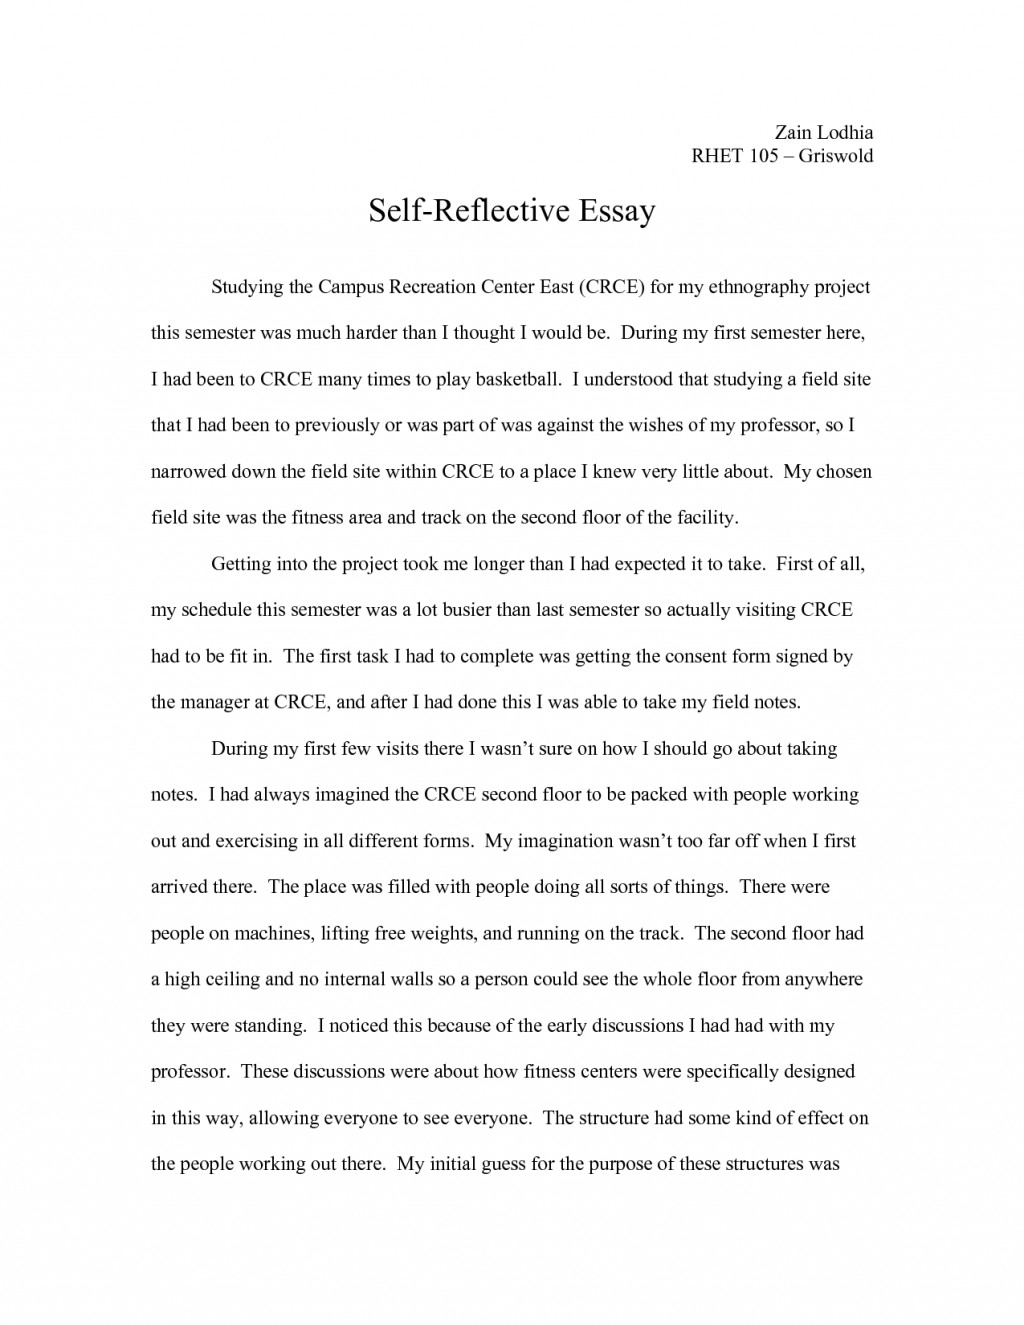 007 Essay Example Qal0pwnf46 Good Fascinating Examples University Explanatory For Middle School Introduction Large